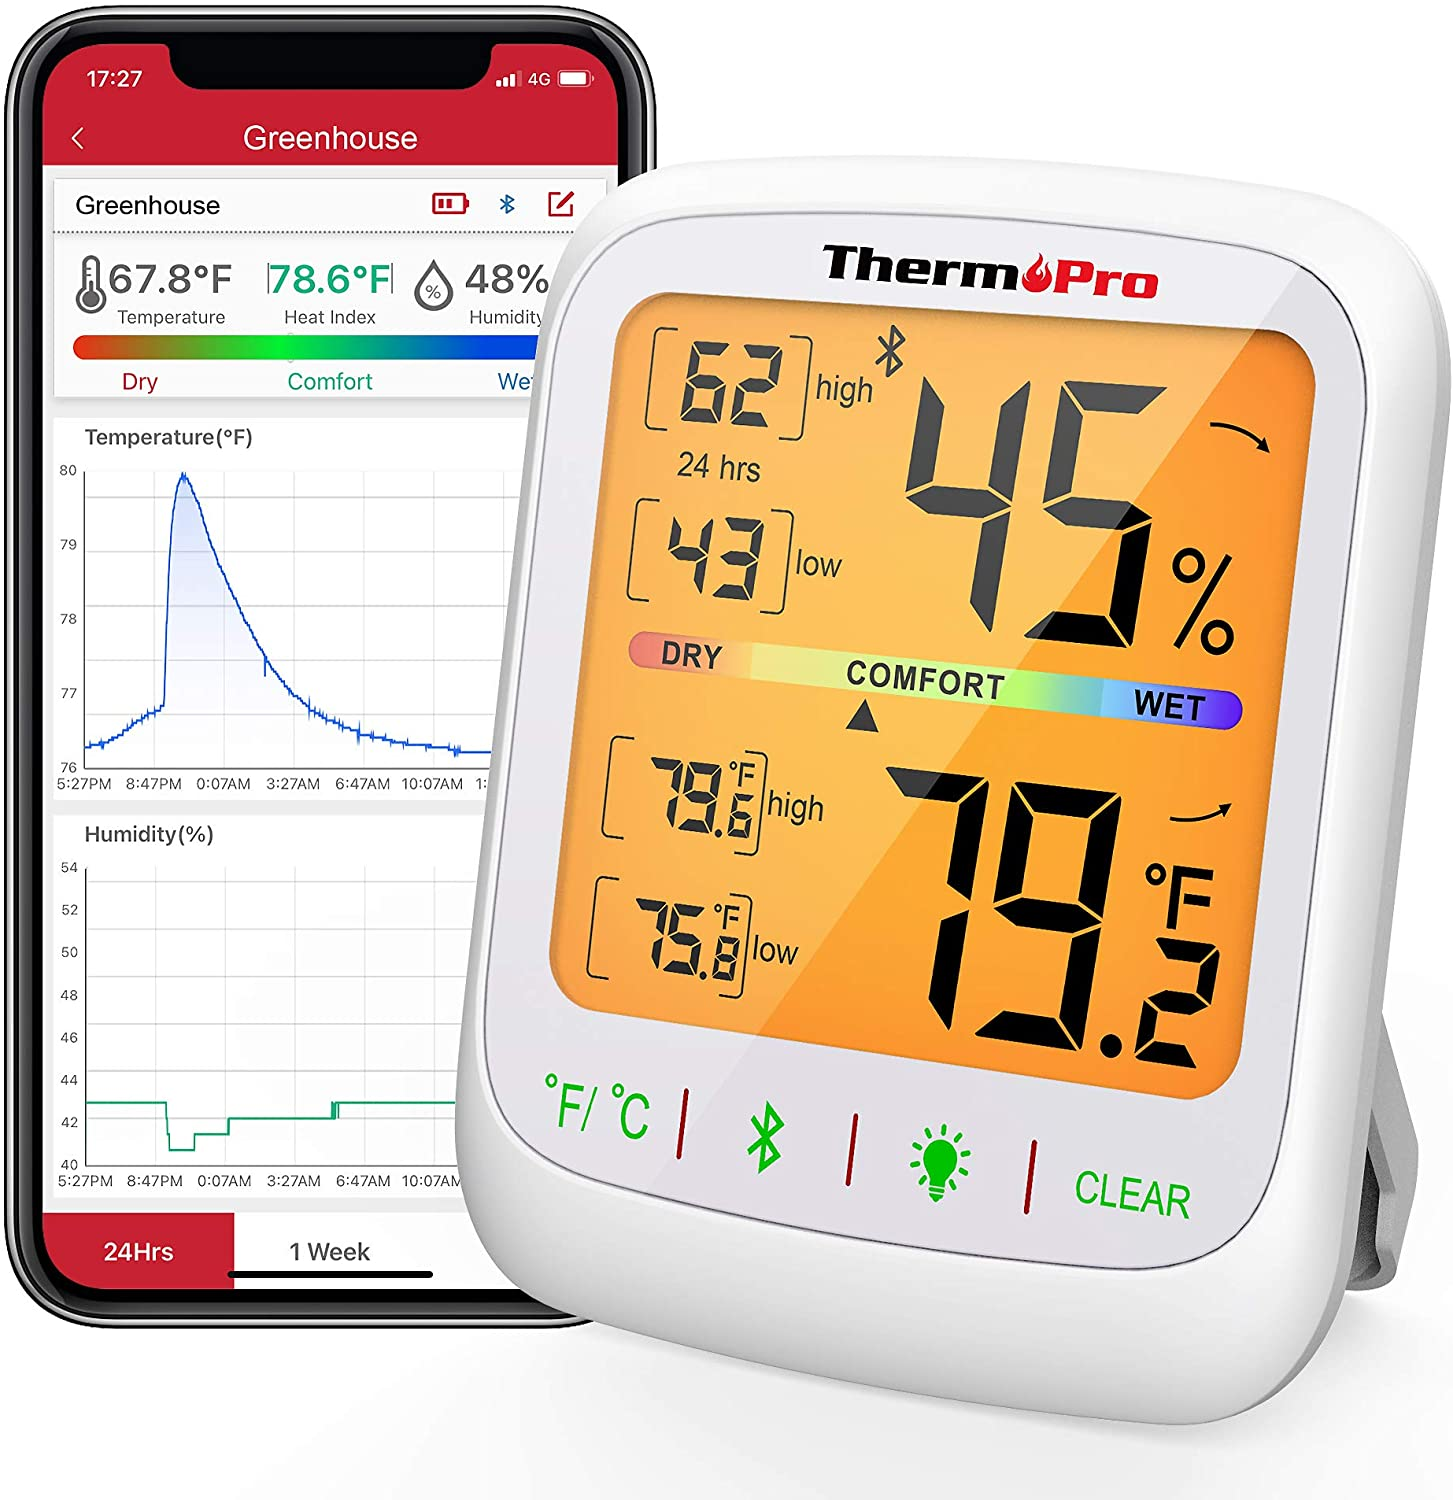 ThermoPro TP59 Wireless Thermometer Hygrometer Bluetooth Digital Indoor Room Thermometer Temperature and Humidity Gauge 260ft Remote Monitor with Smart App Alerts Comfort Indicator HI&LO Records